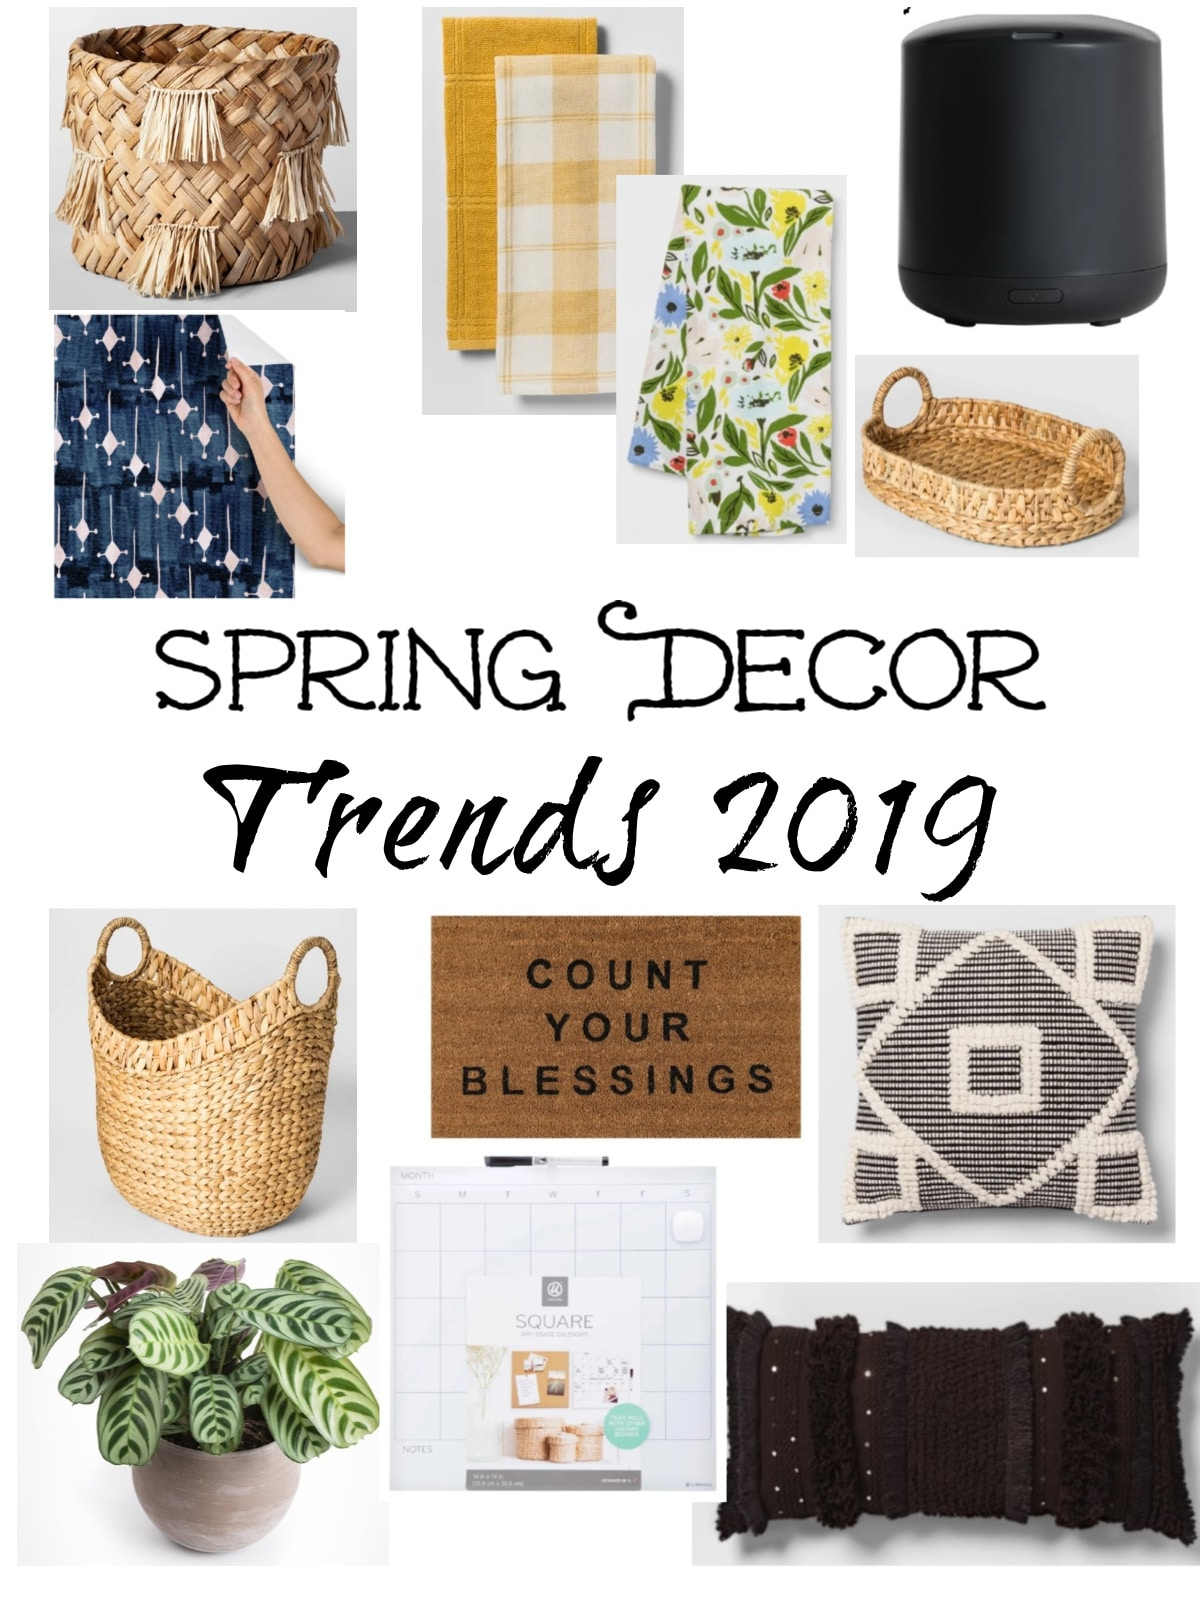 Spring Home Decor Trends 2019- Hygge-Natural-Your Style      Who is